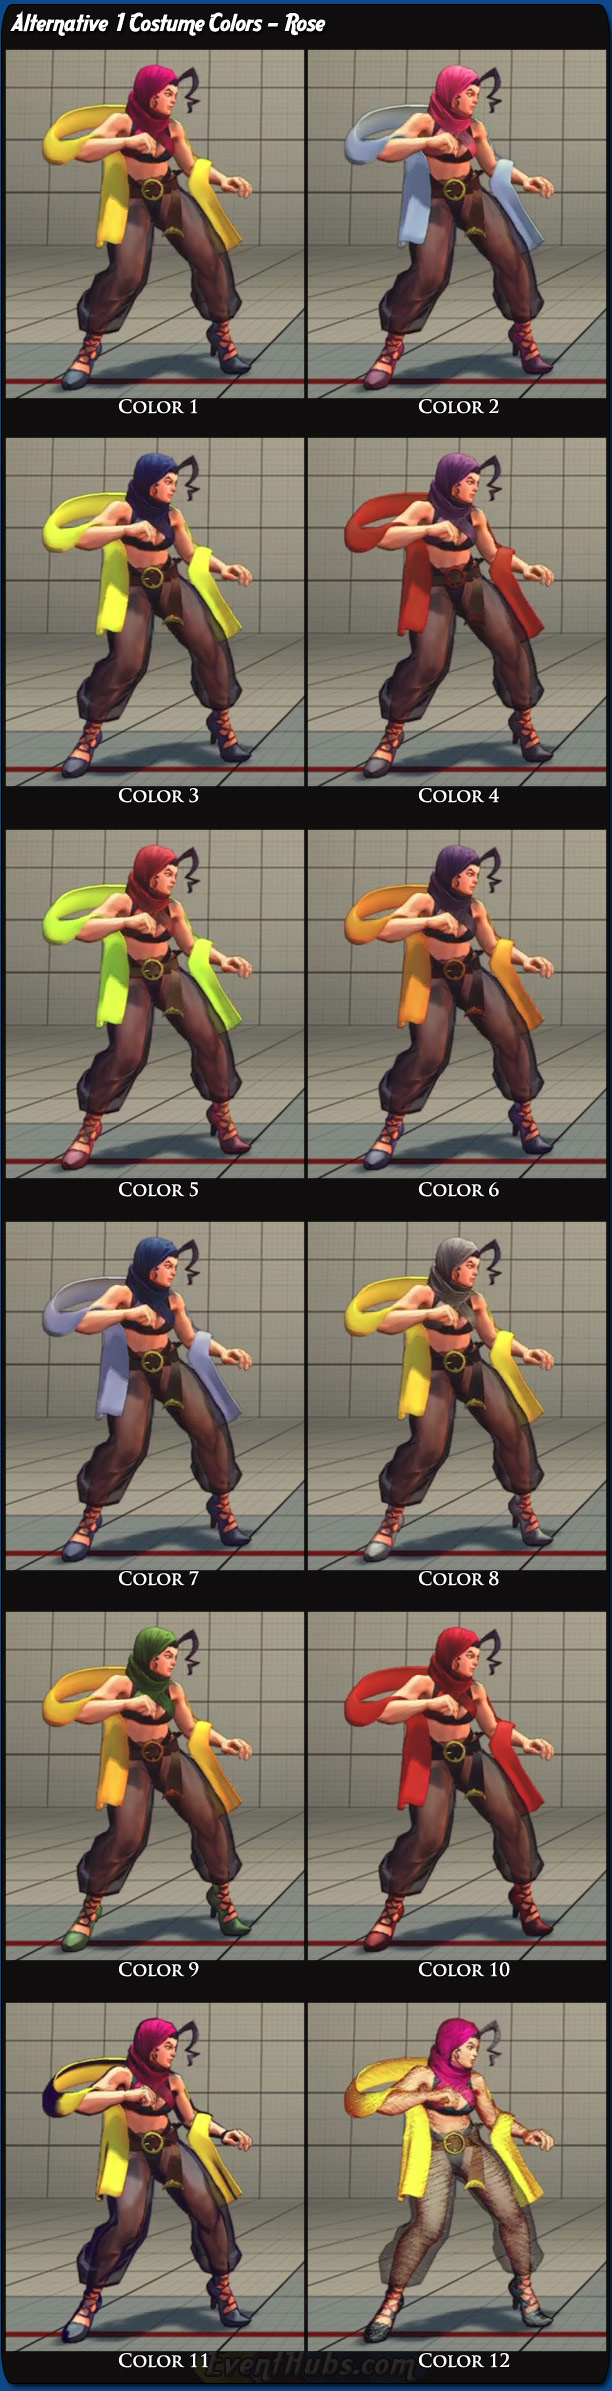 Rose's alternative costume colors for Super Street Fighter 4